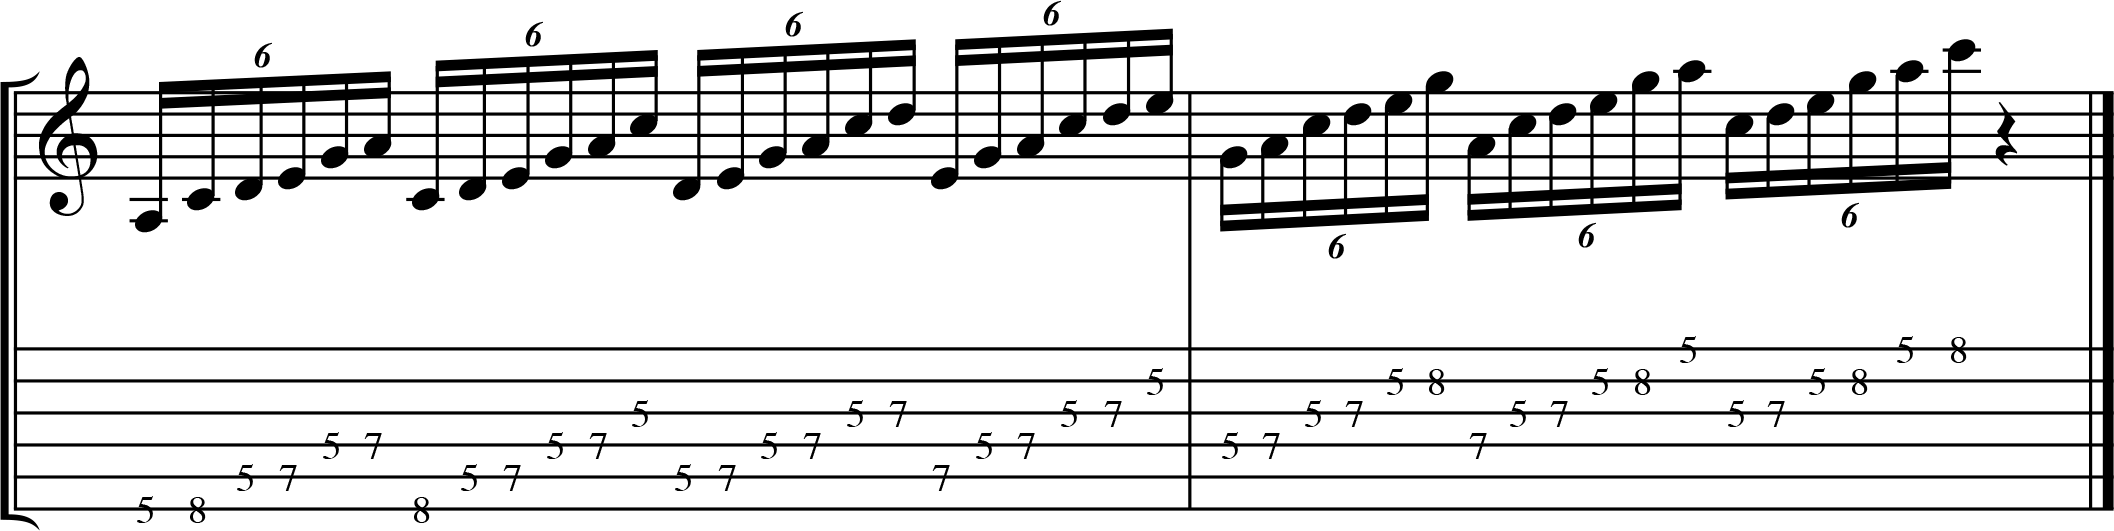 Notation for pentatonic scale played in sixteenth note triplets.